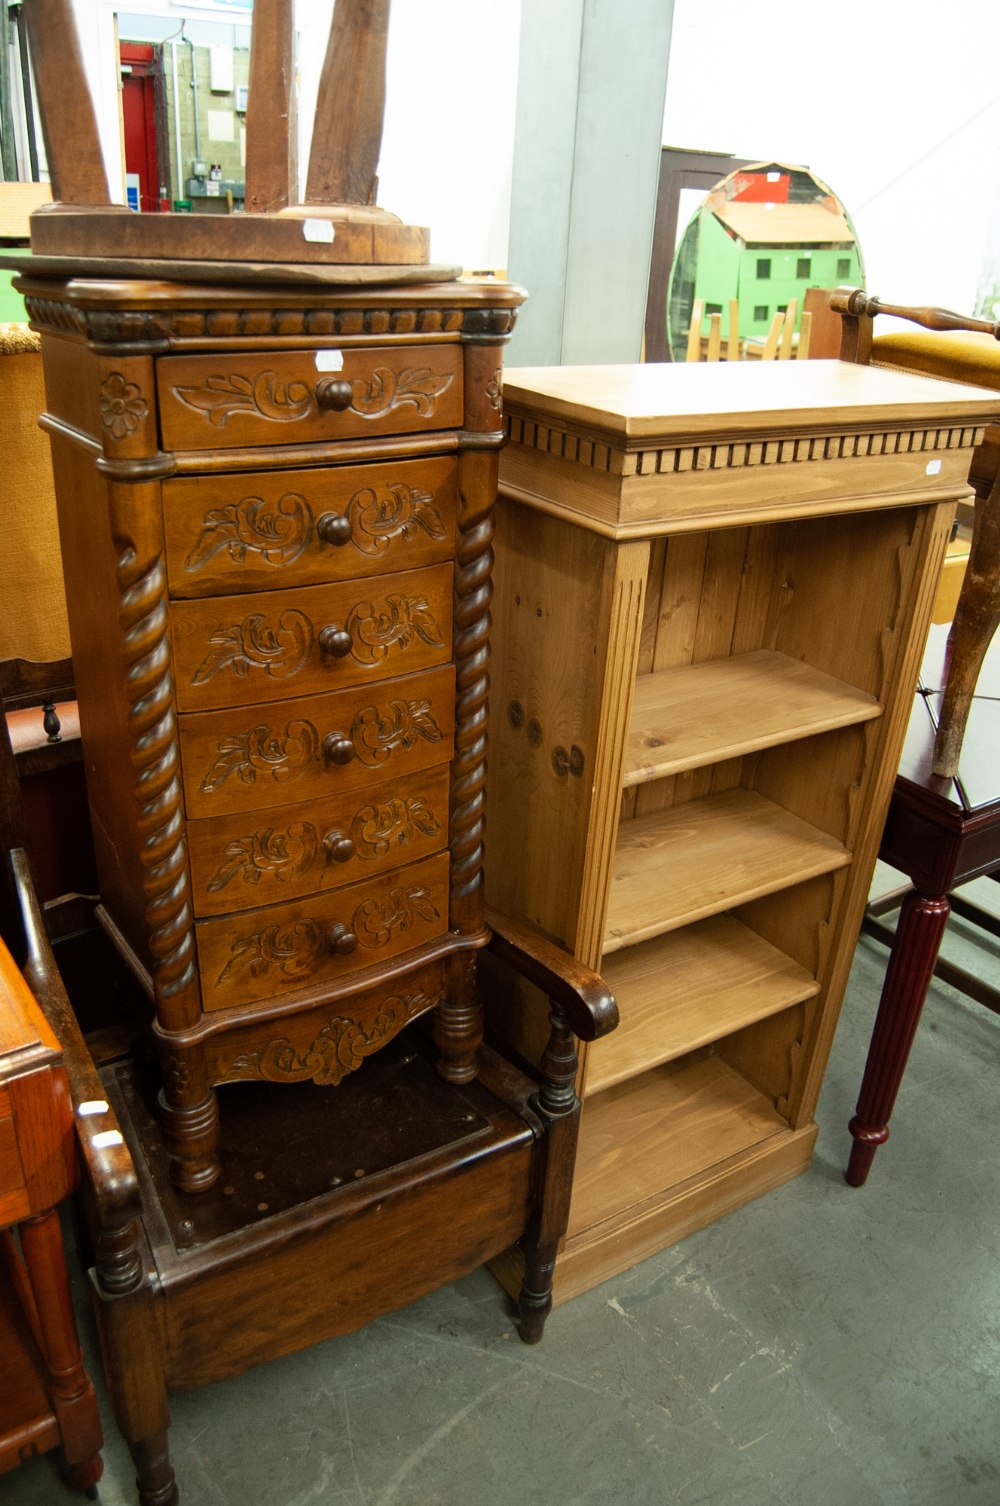 Lot 26 - A NARROW PINE OPEN BOOKCASE WITH ADJUSTABLE SHELVES AND A NARROW CHEST OF SIX DRAWERS WITH CARVED